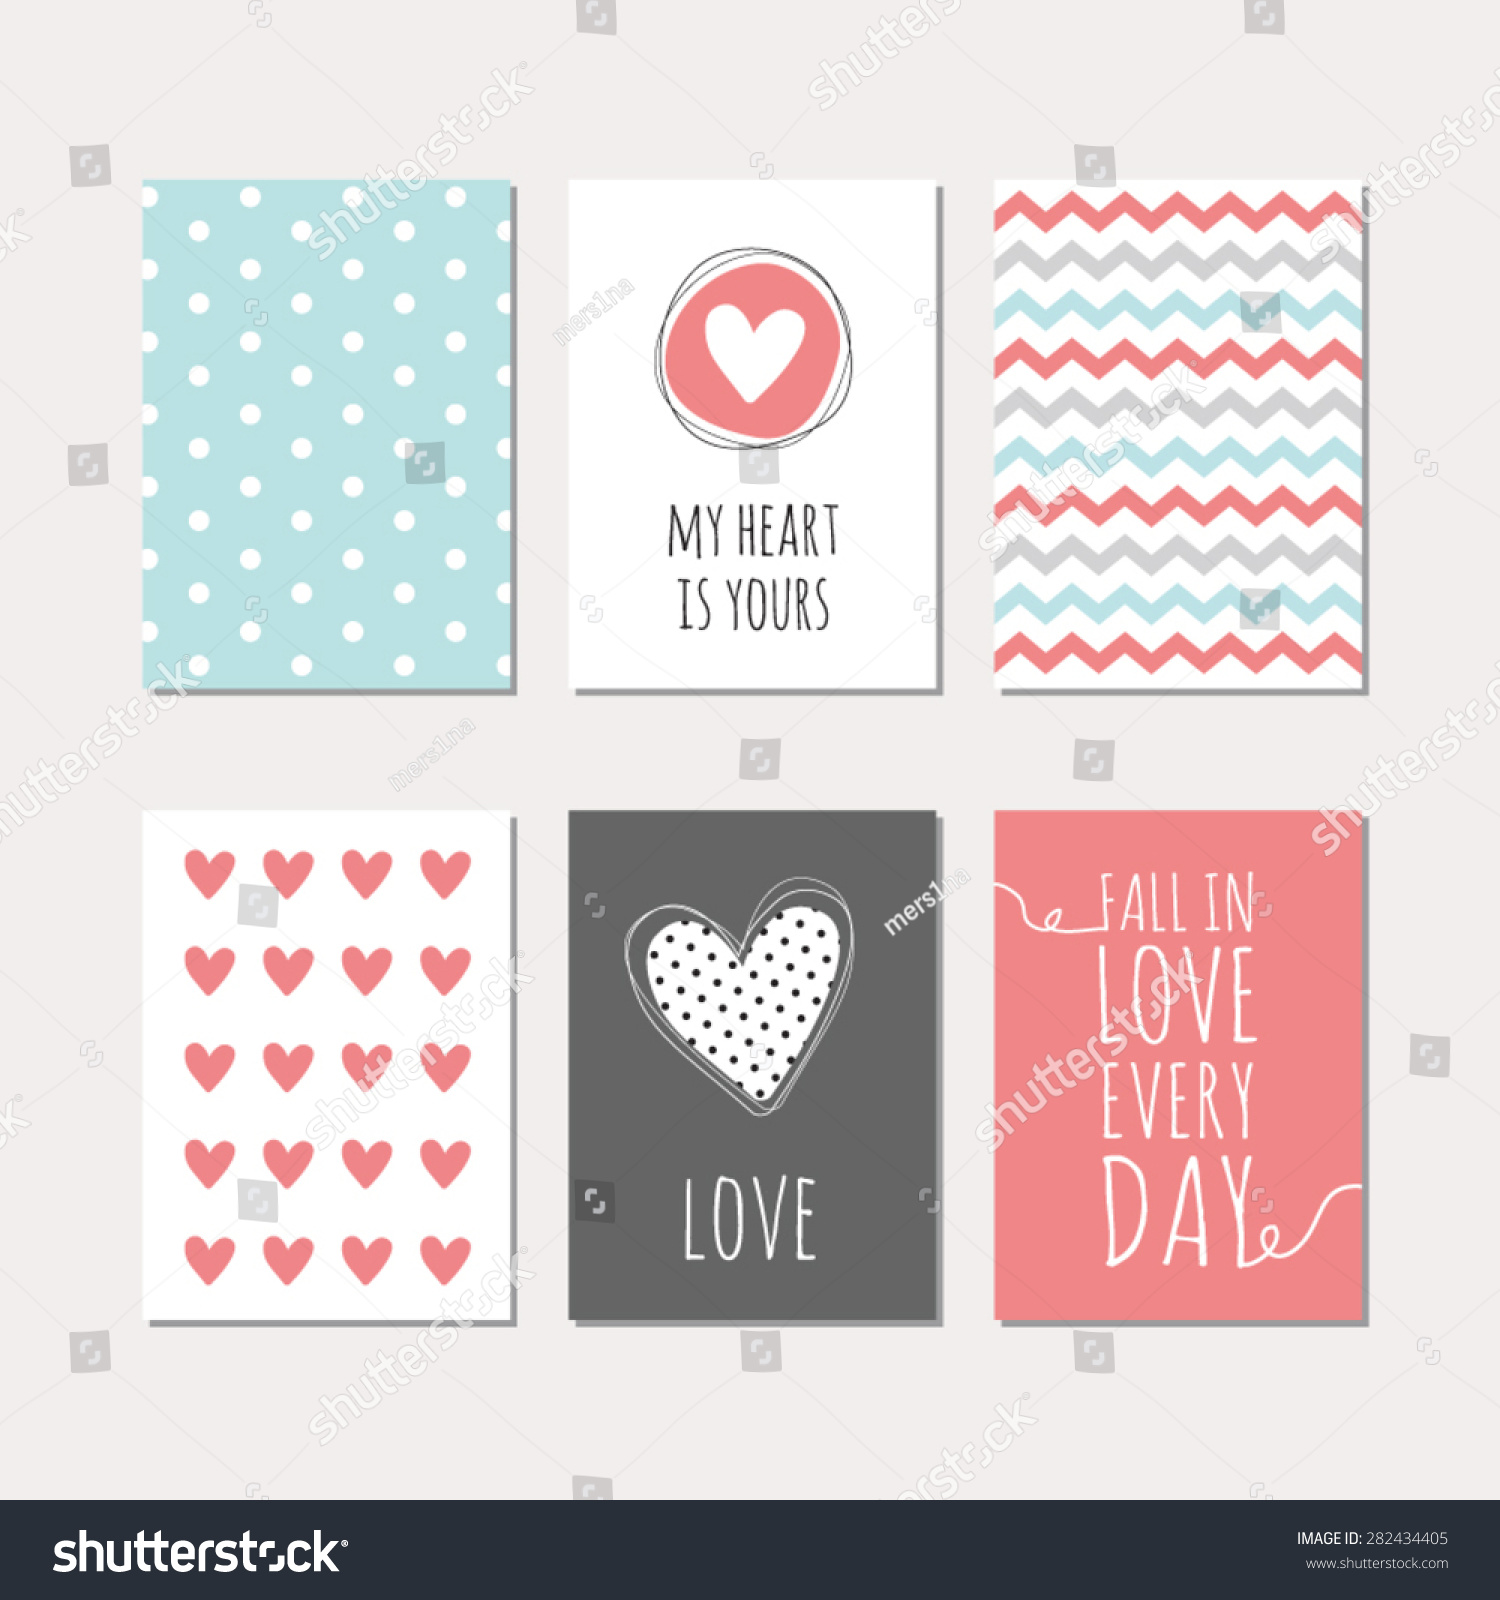 set cute creative cards love theme stock vector  set of cute creative cards love theme design vector design templates for greeting